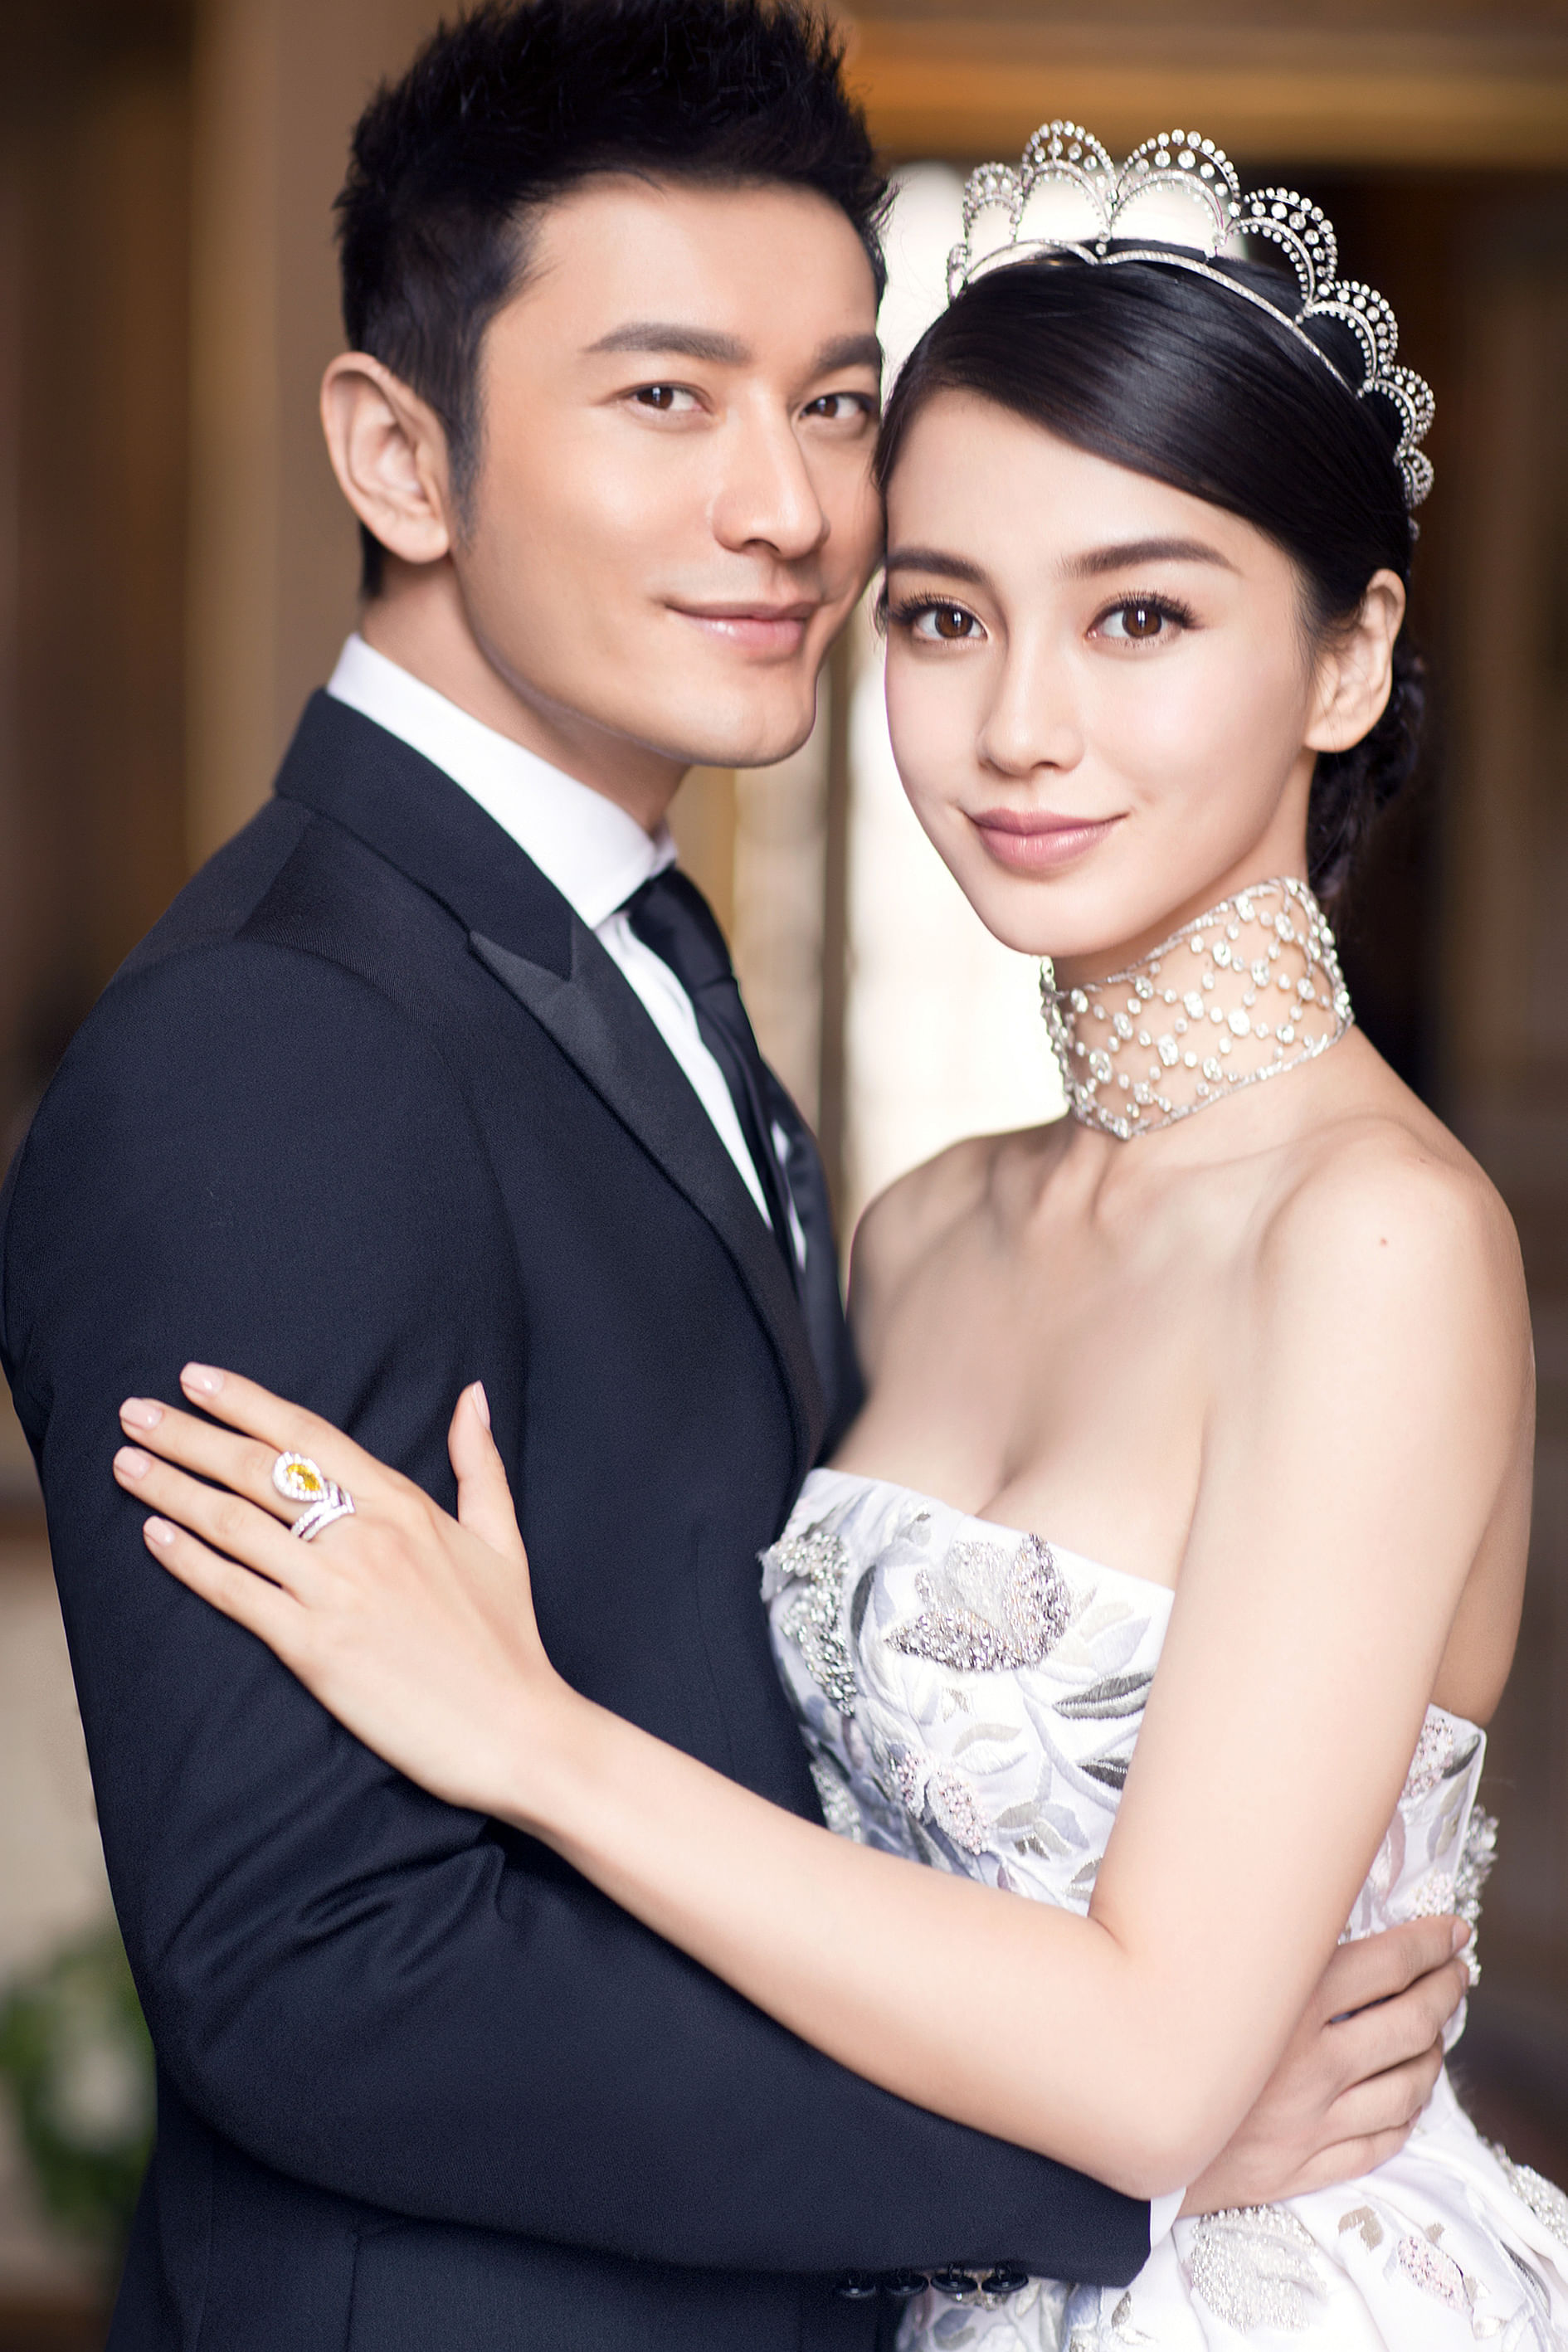 Actors Huang Xiaoming and Angelababy hold fairy-tale like